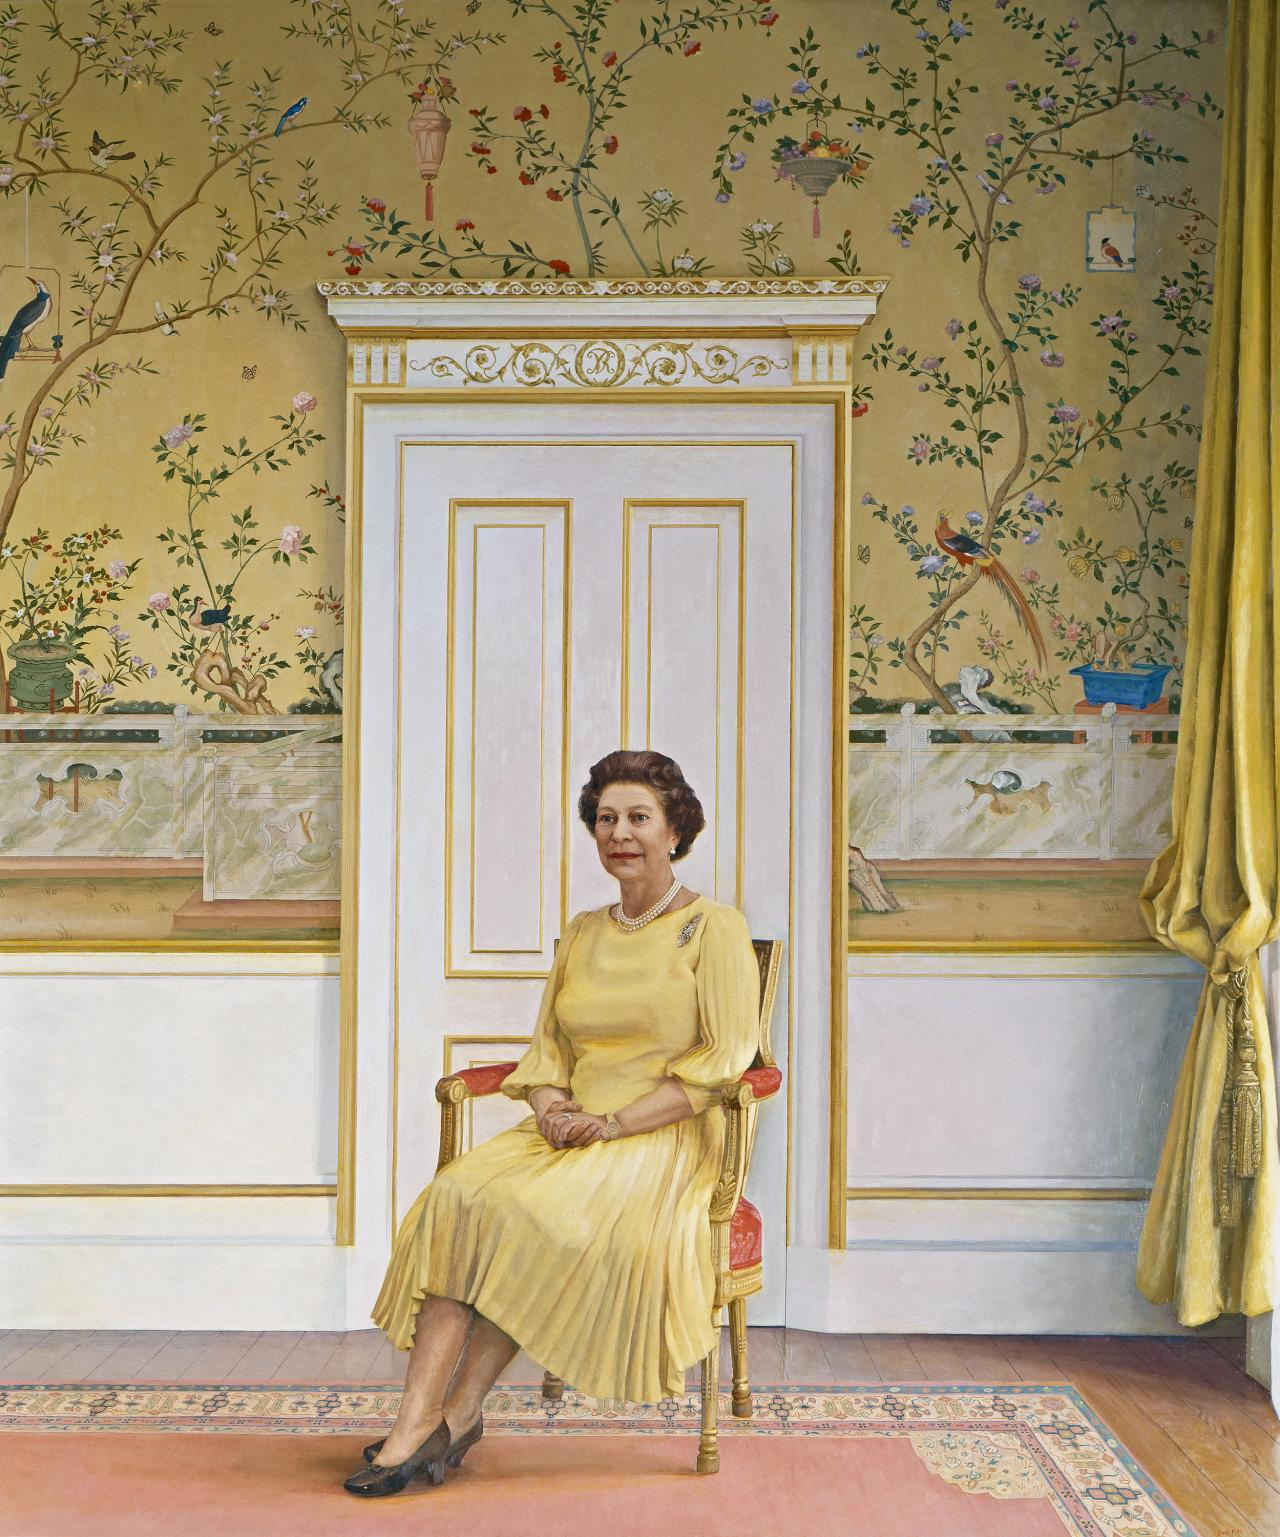 Sesquicentenary portrait of Her Majesty, Queen Elizabeth II